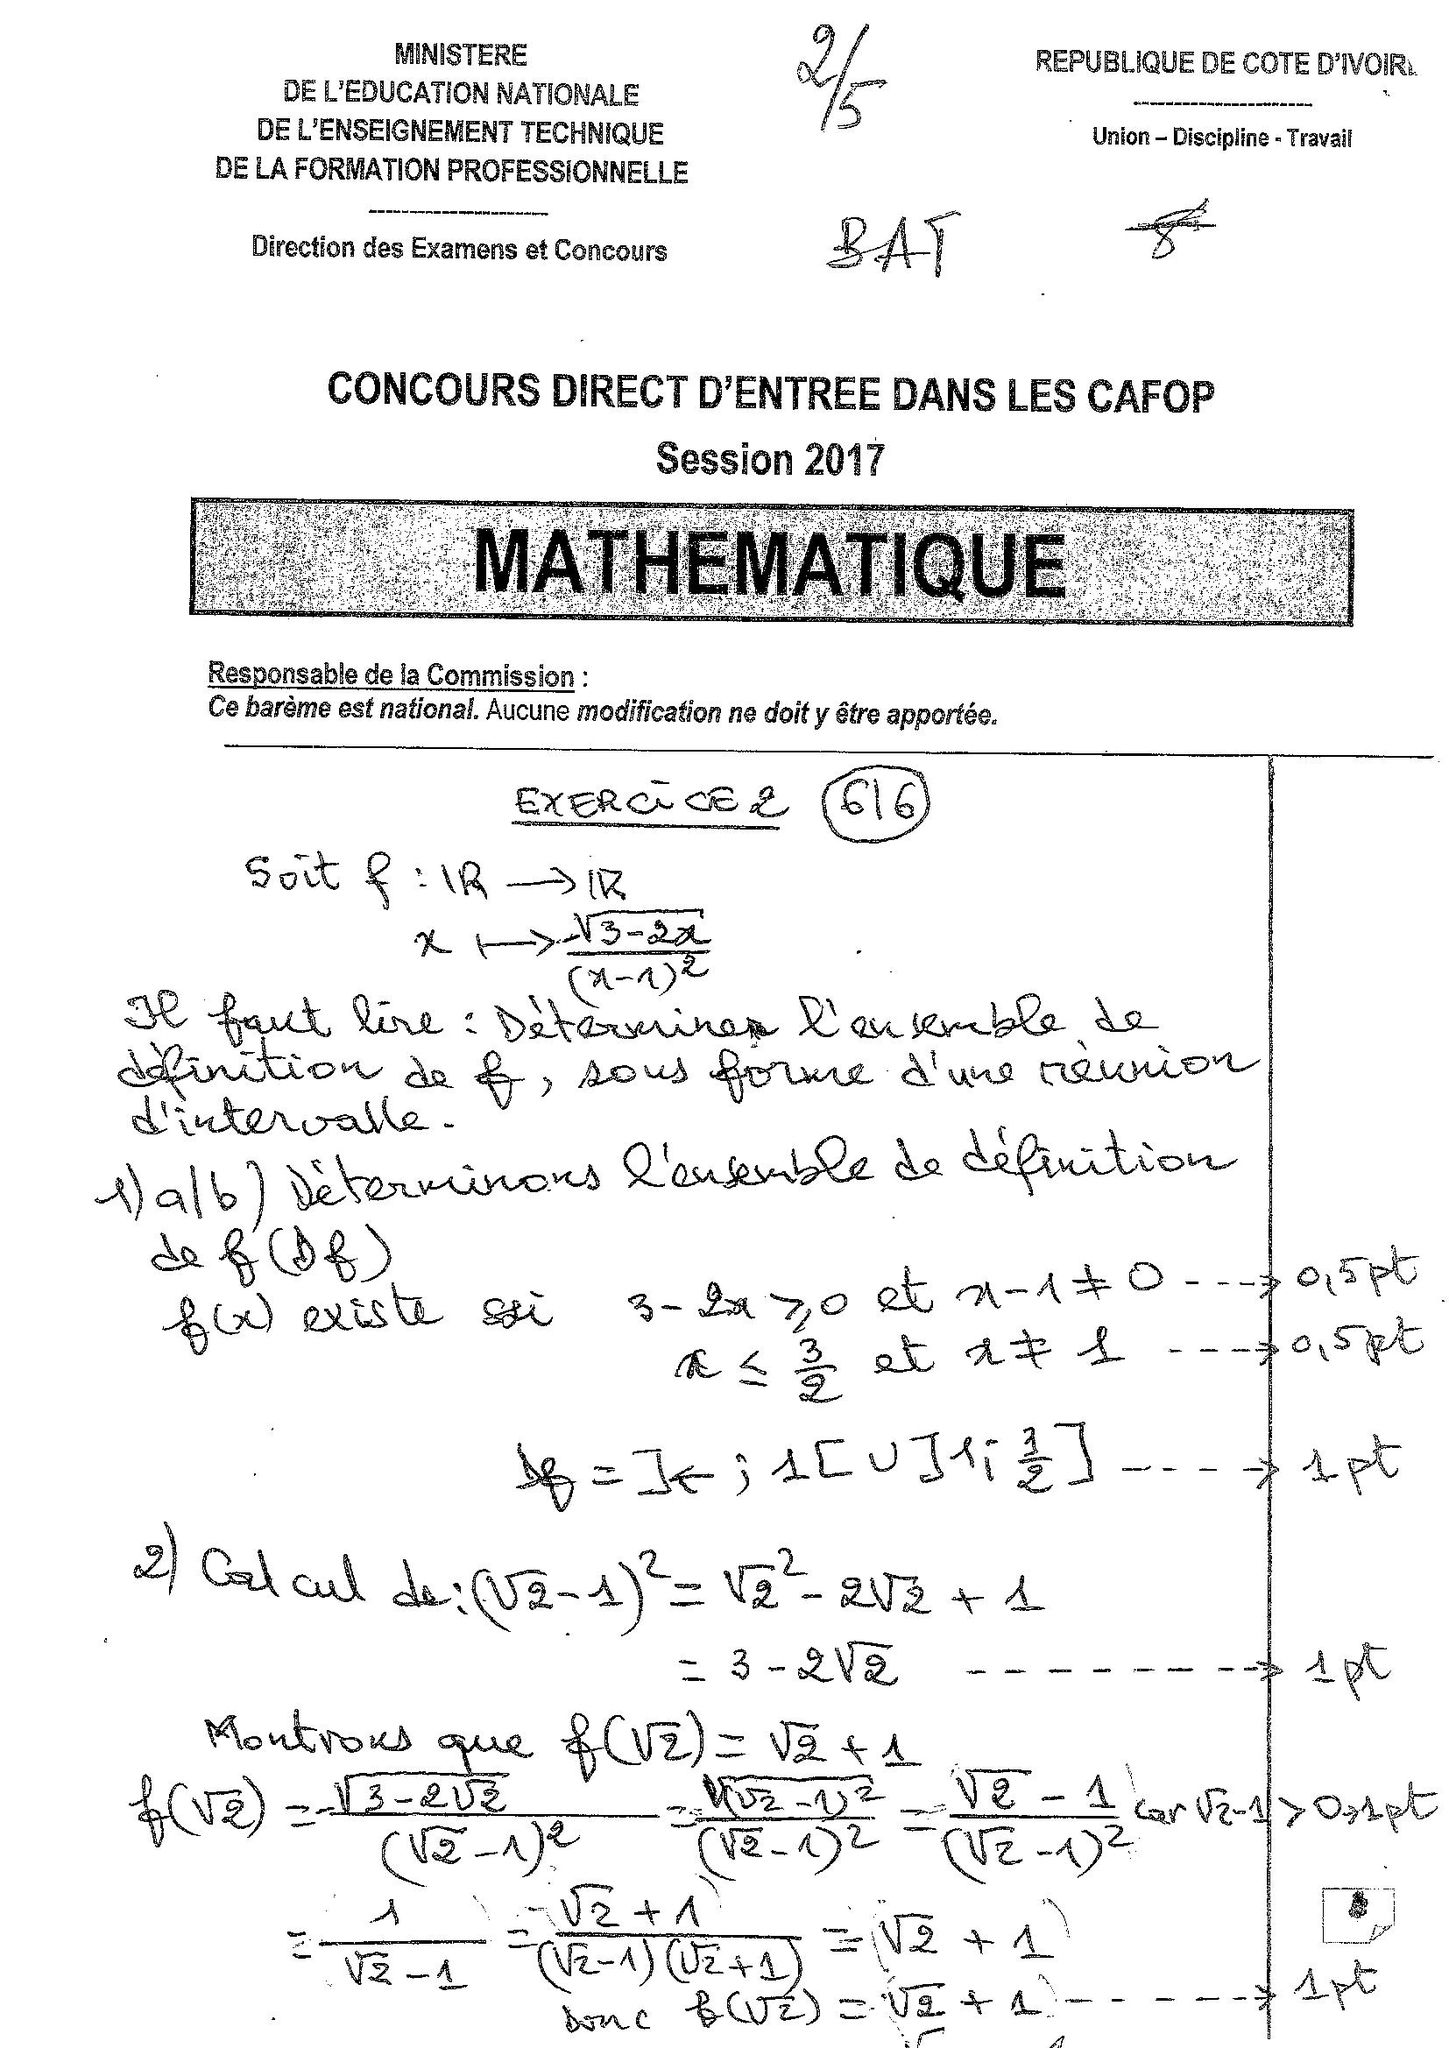 Menet Fp Deco Epreuves Corriges Du Concours D Entree Au Cafop Instituteur Adjoint Session 2017 Du 20 05 2017 Blog Des Eleves Maitres De Cote D Ivoire Exemple Lettre Motivation Education Nationale Institutrice